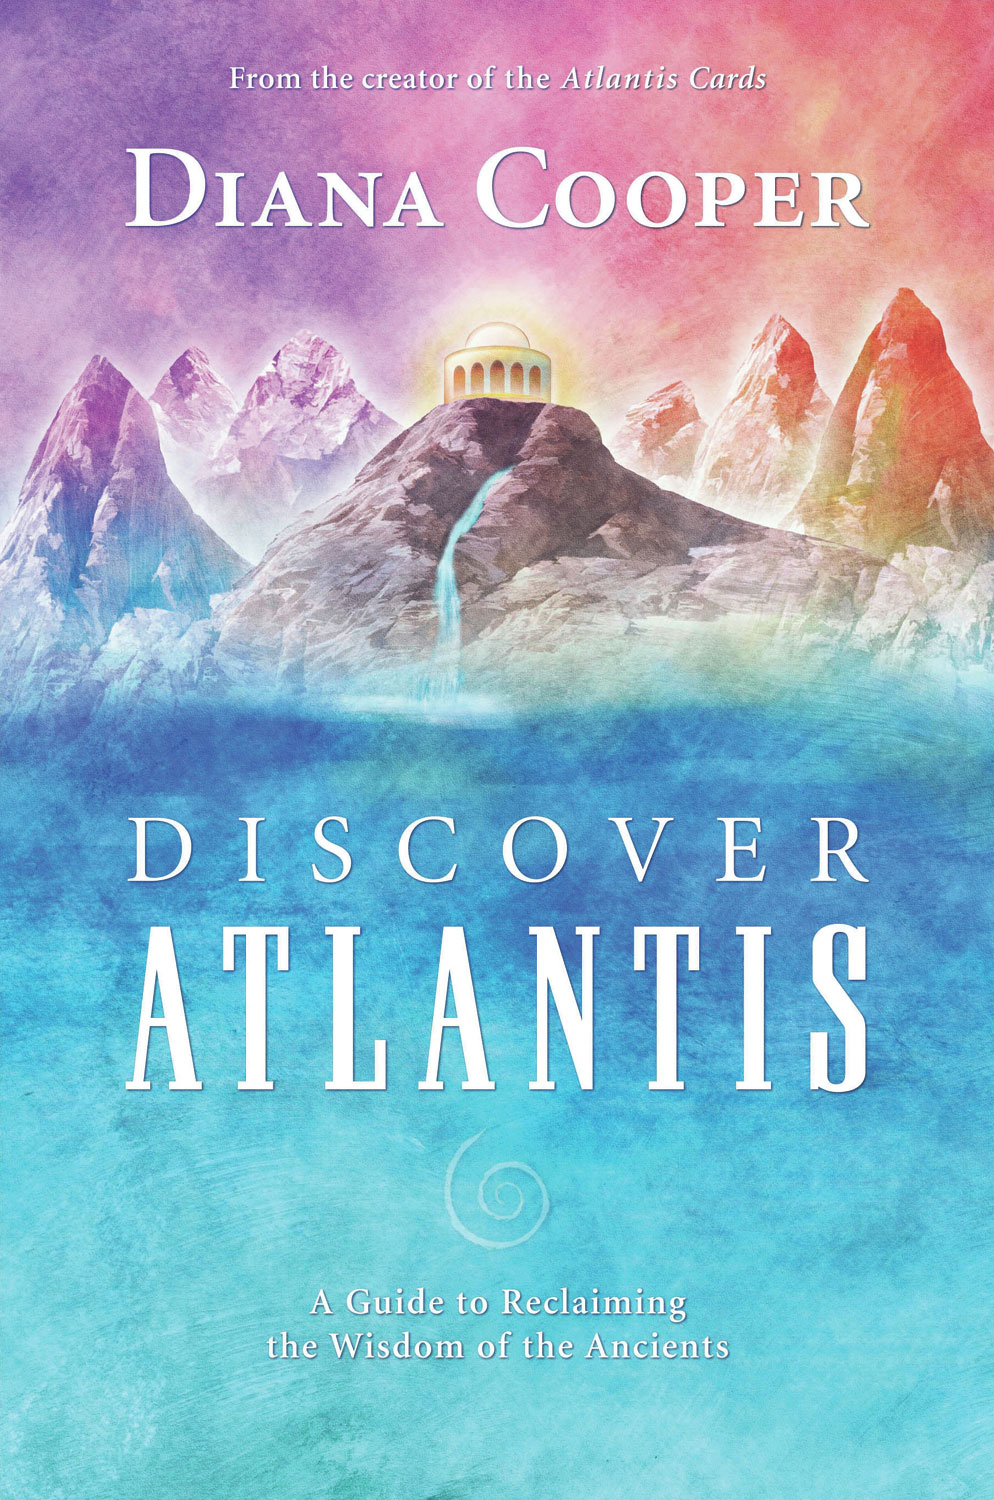 Discover Atlantis: A Guide to Reclaiming the Wisdom of the Ancients By: Diana Cooper